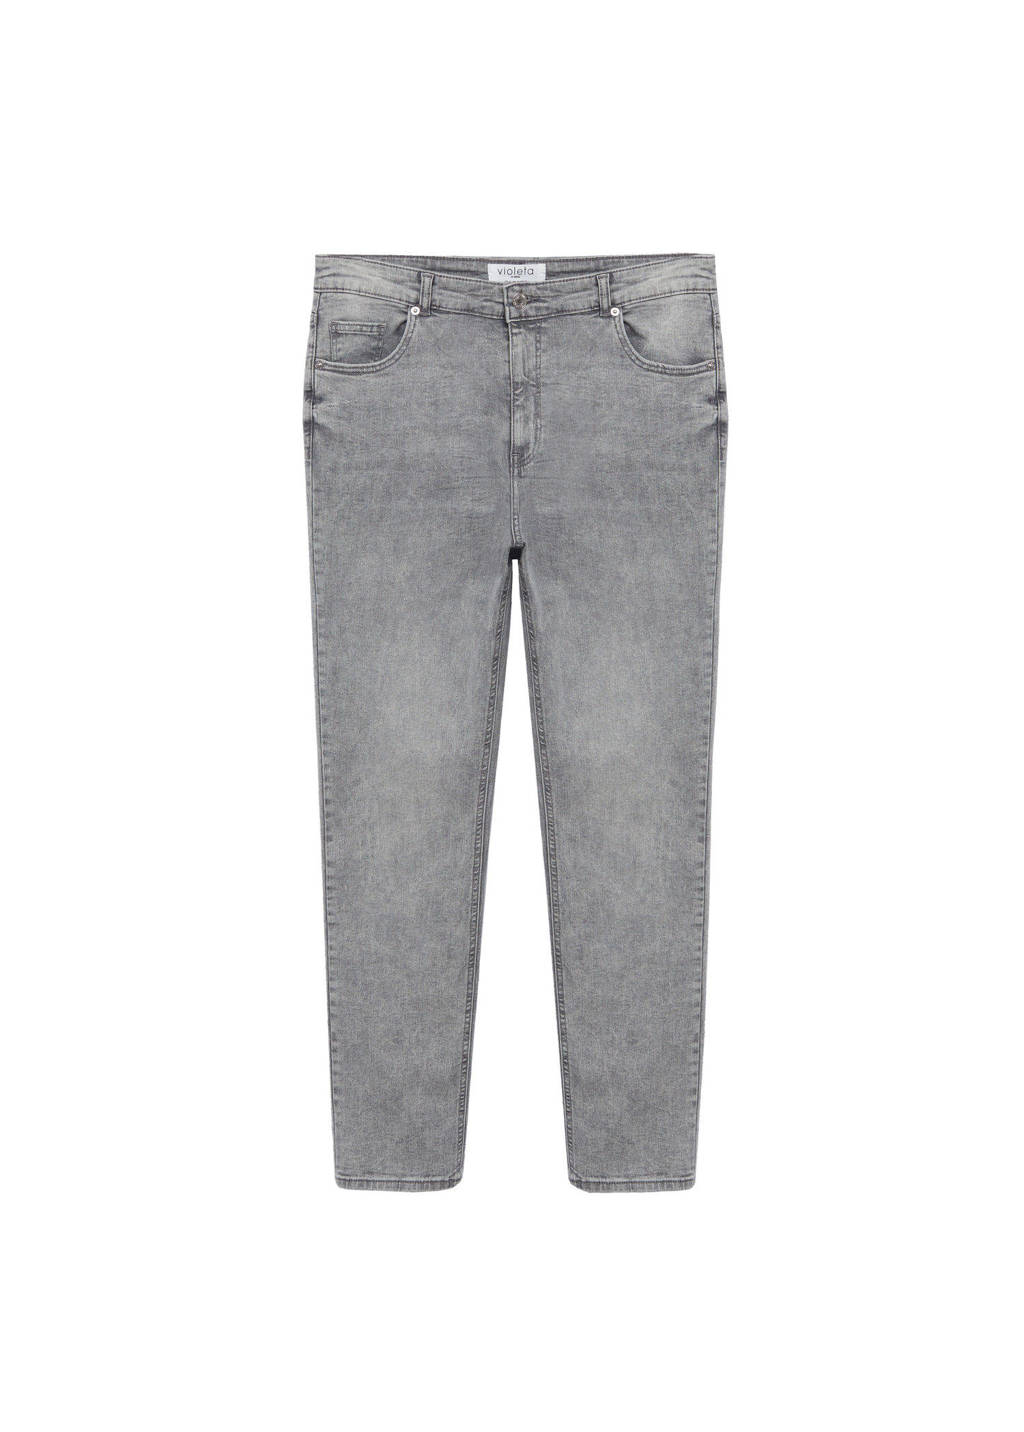 Violeta by Mango slim fit jeans grijs denim, Grijs denim